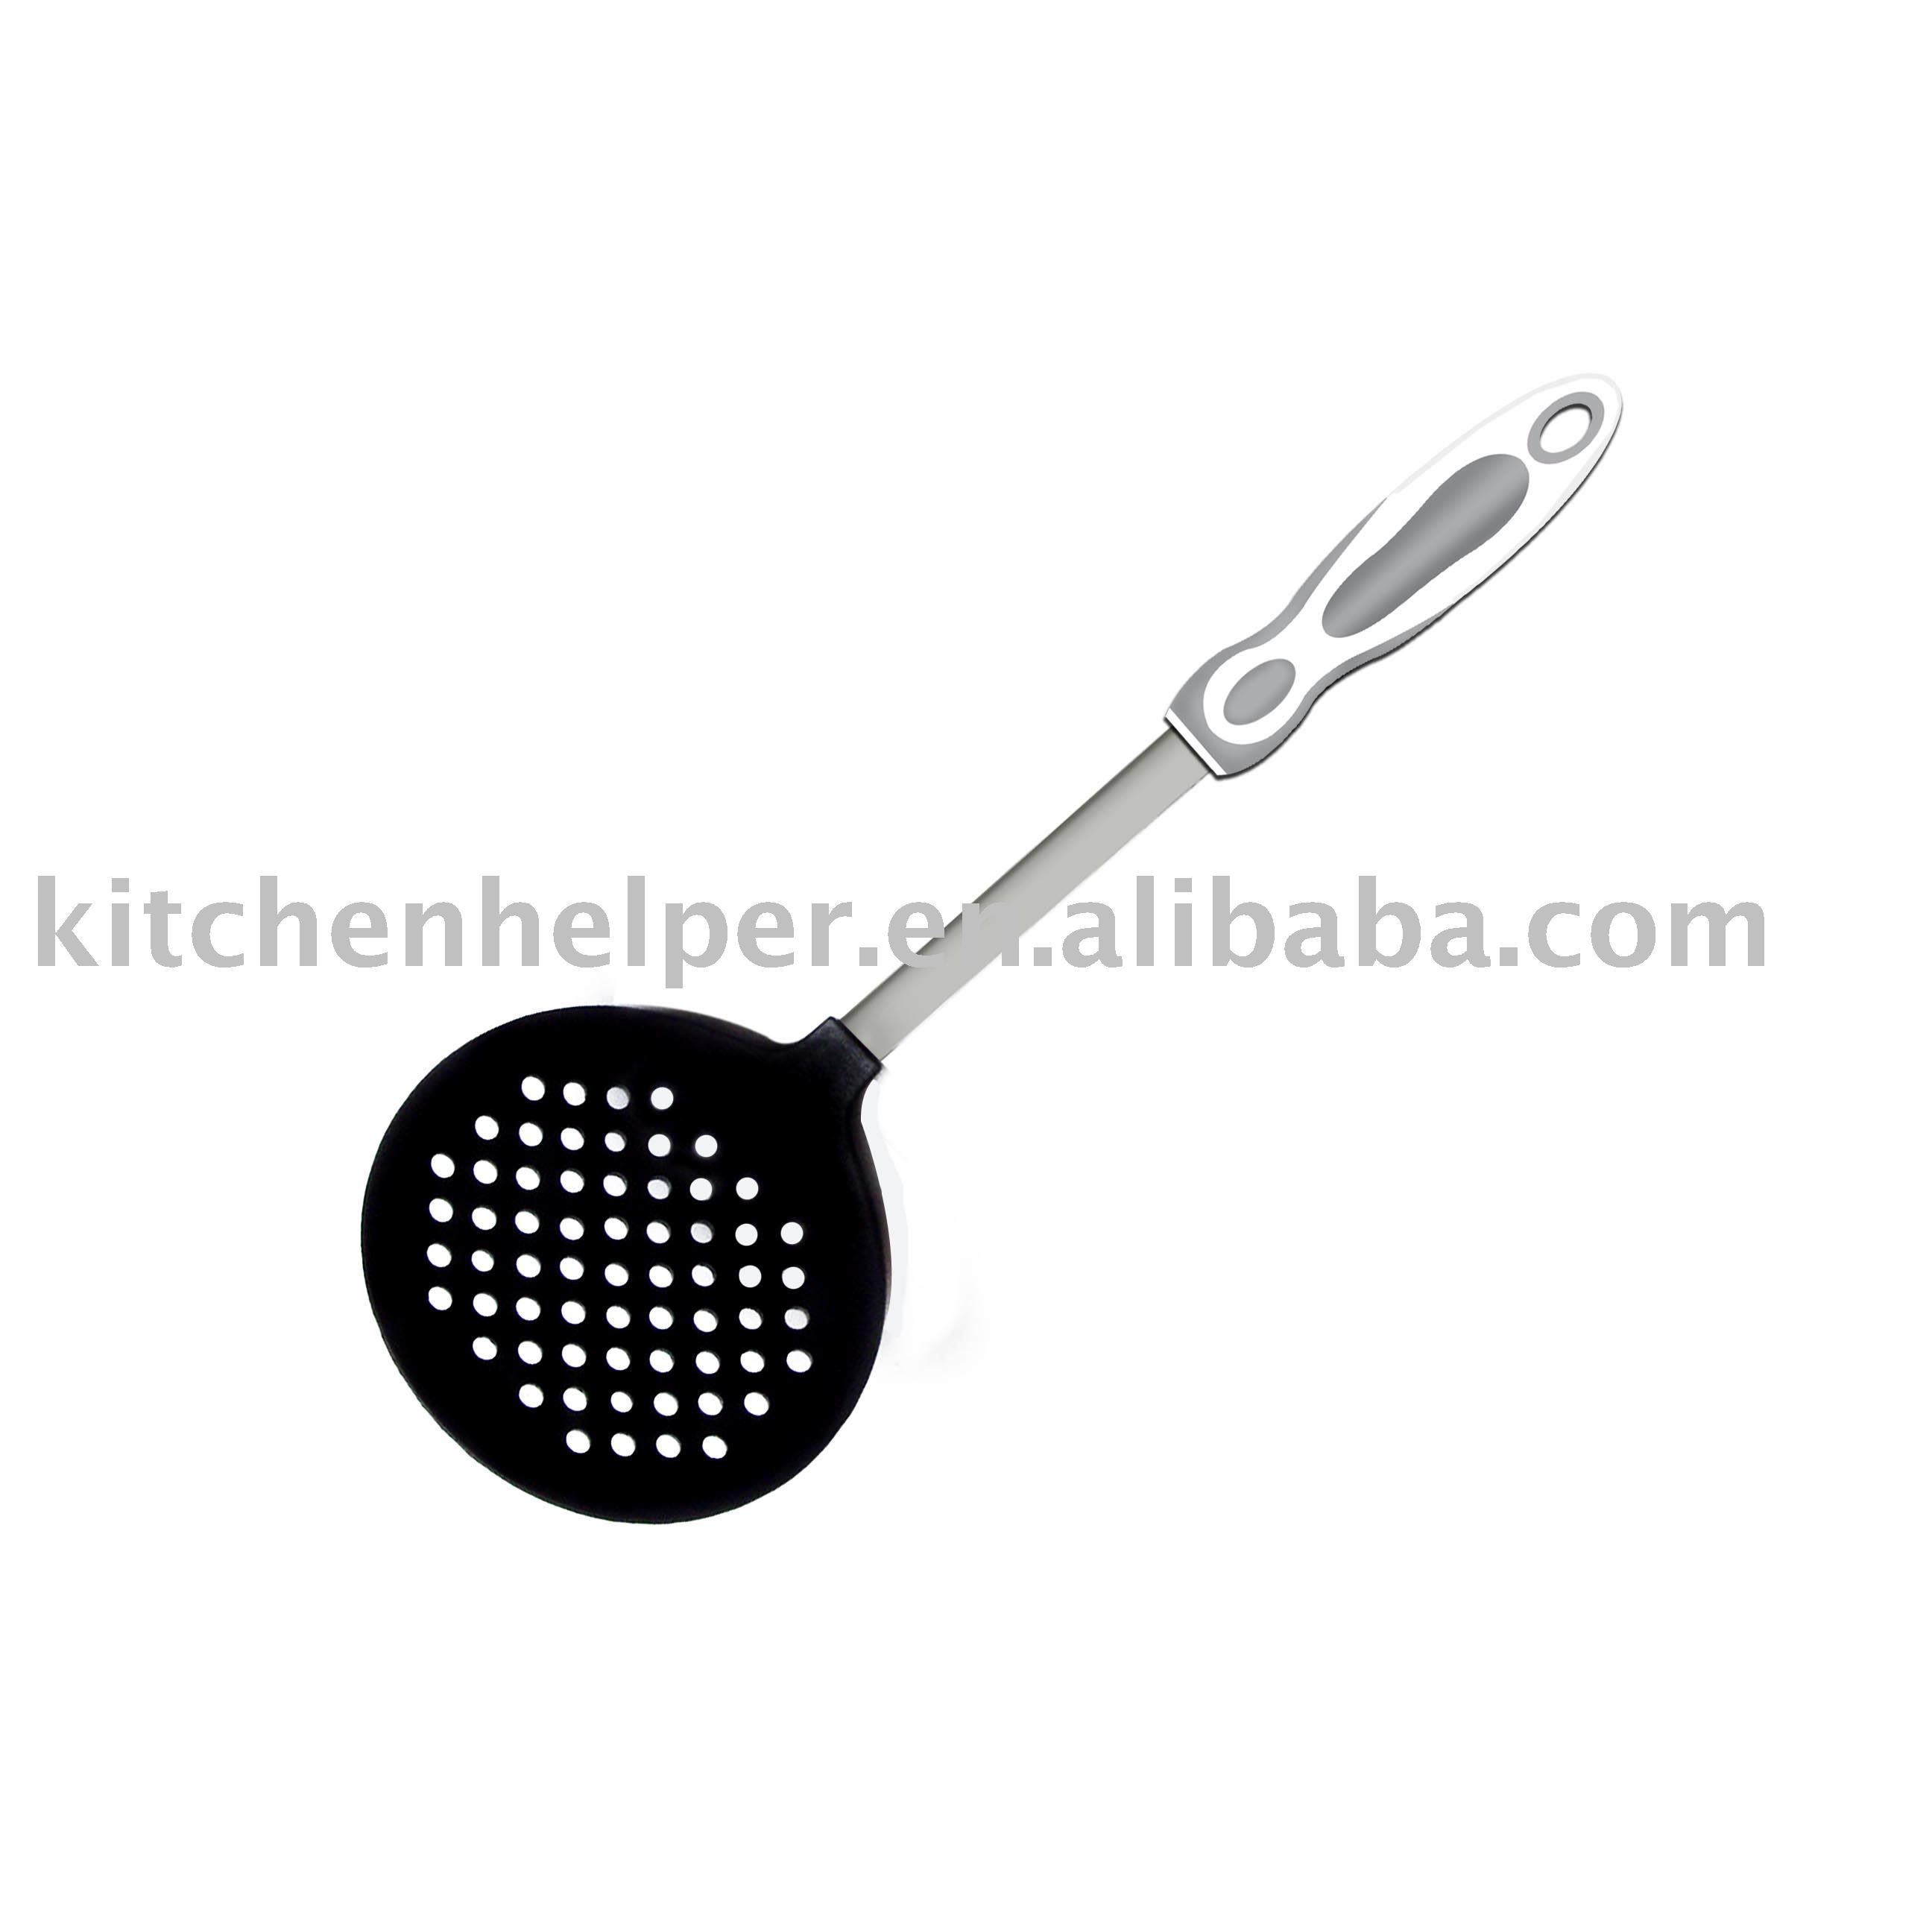 Nylon Kitchen Skimmer, Nylon Kitchen Skimmer Suppliers And Manufacturers At  Alibaba.com